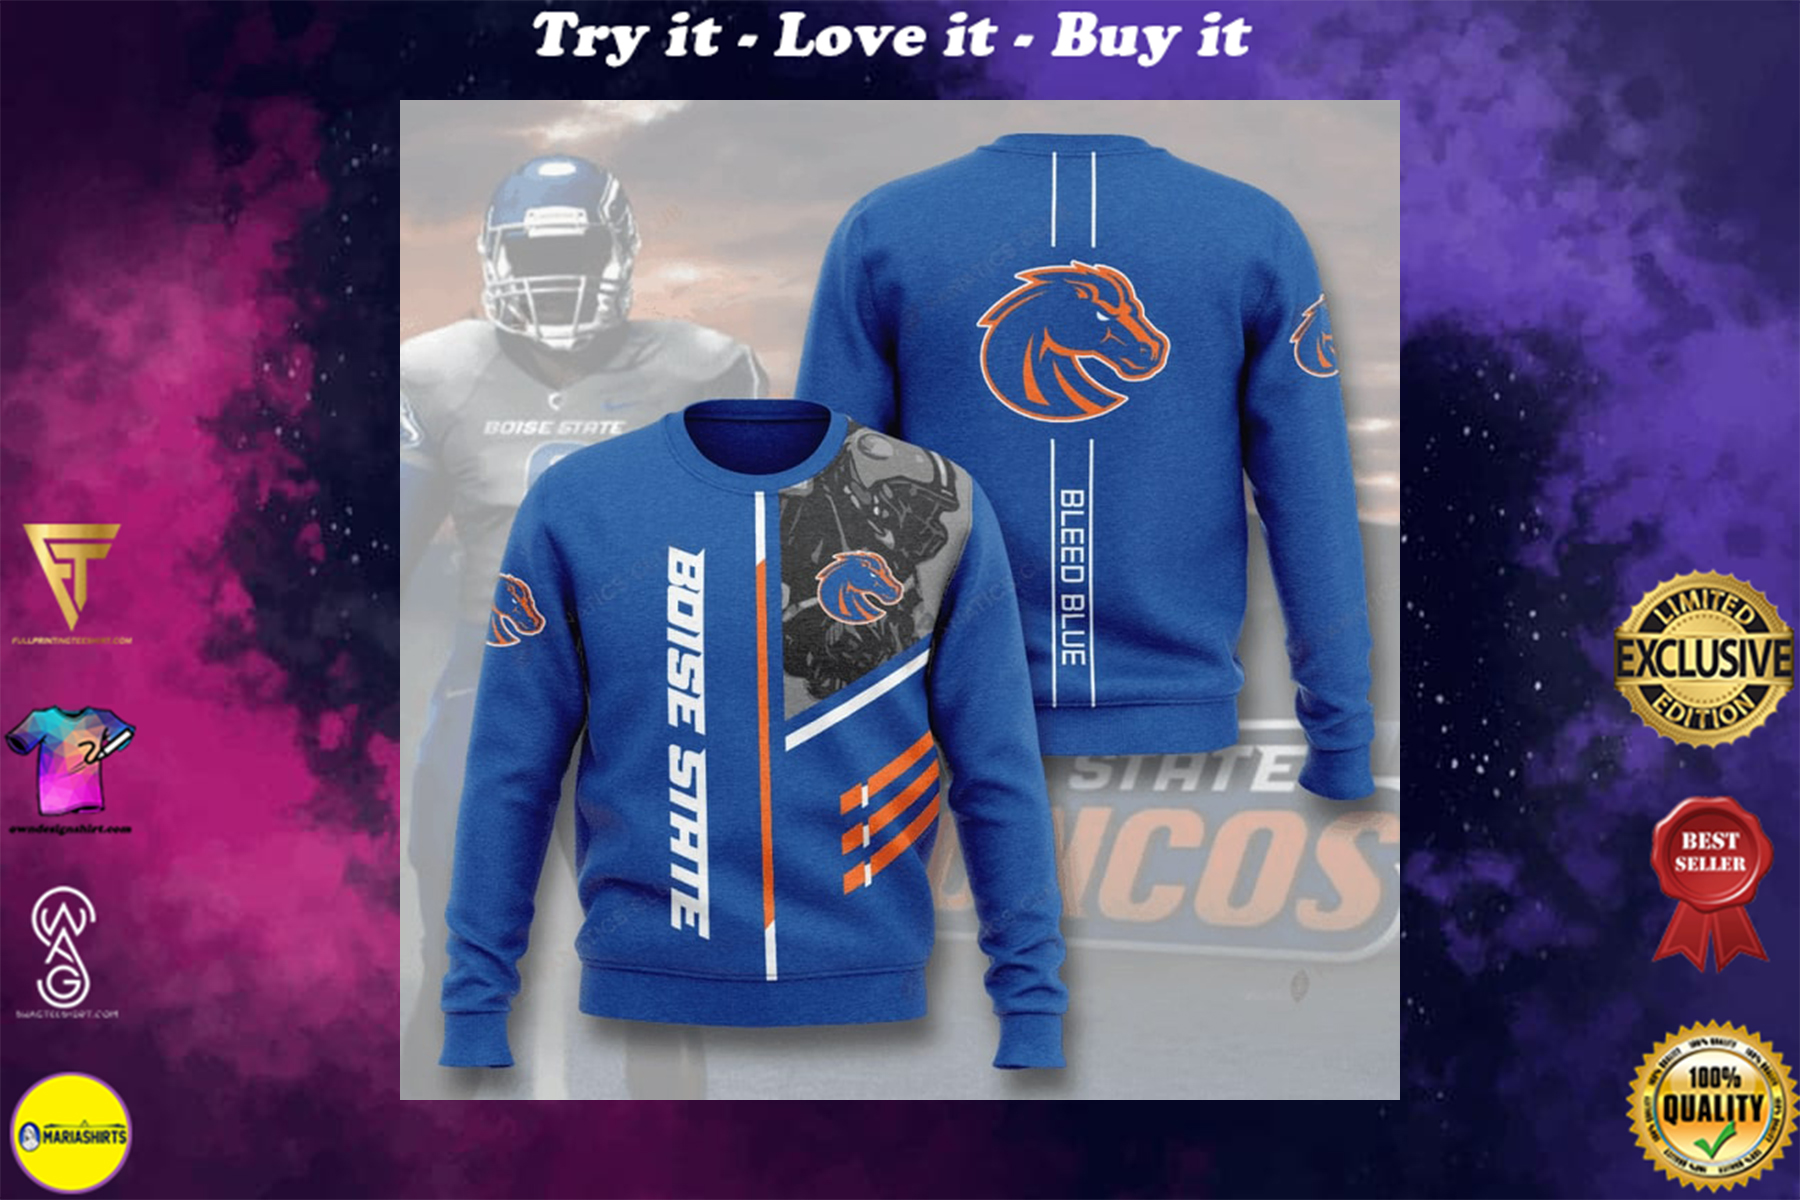 [highest selling] boise state broncos bleed blue full printing ugly sweater - maria